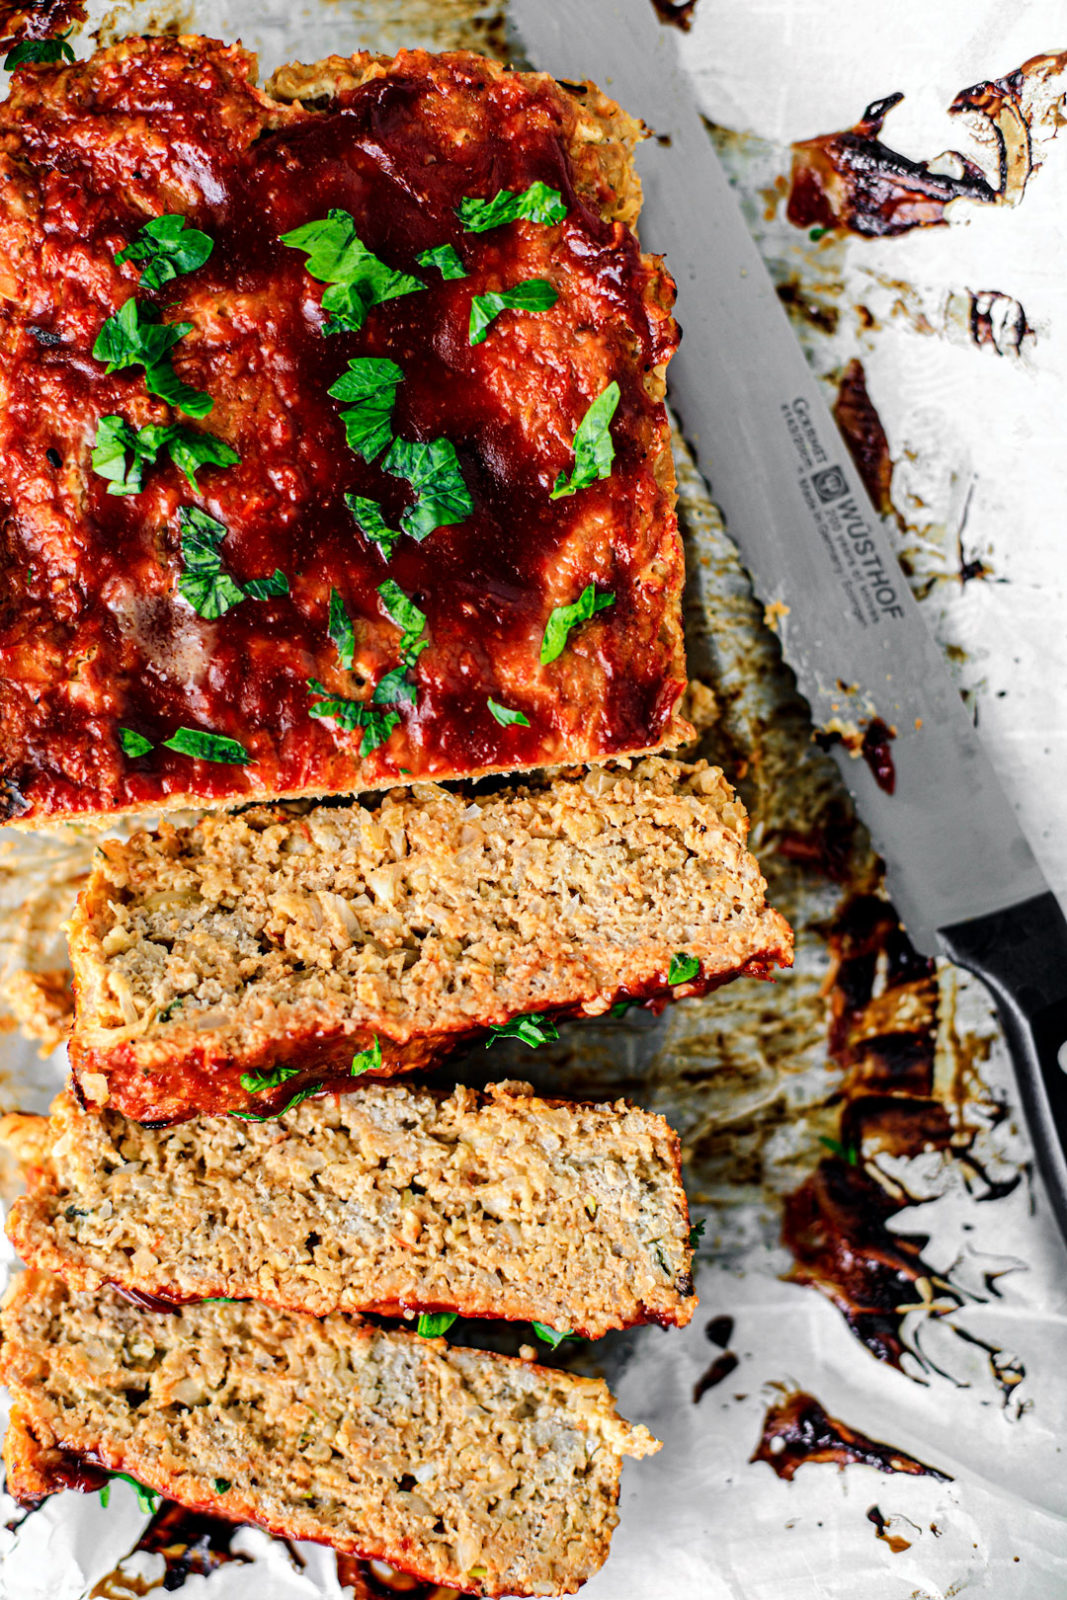 Meatloaf partially sliced over parchment paper, garnished with bright green parsley.